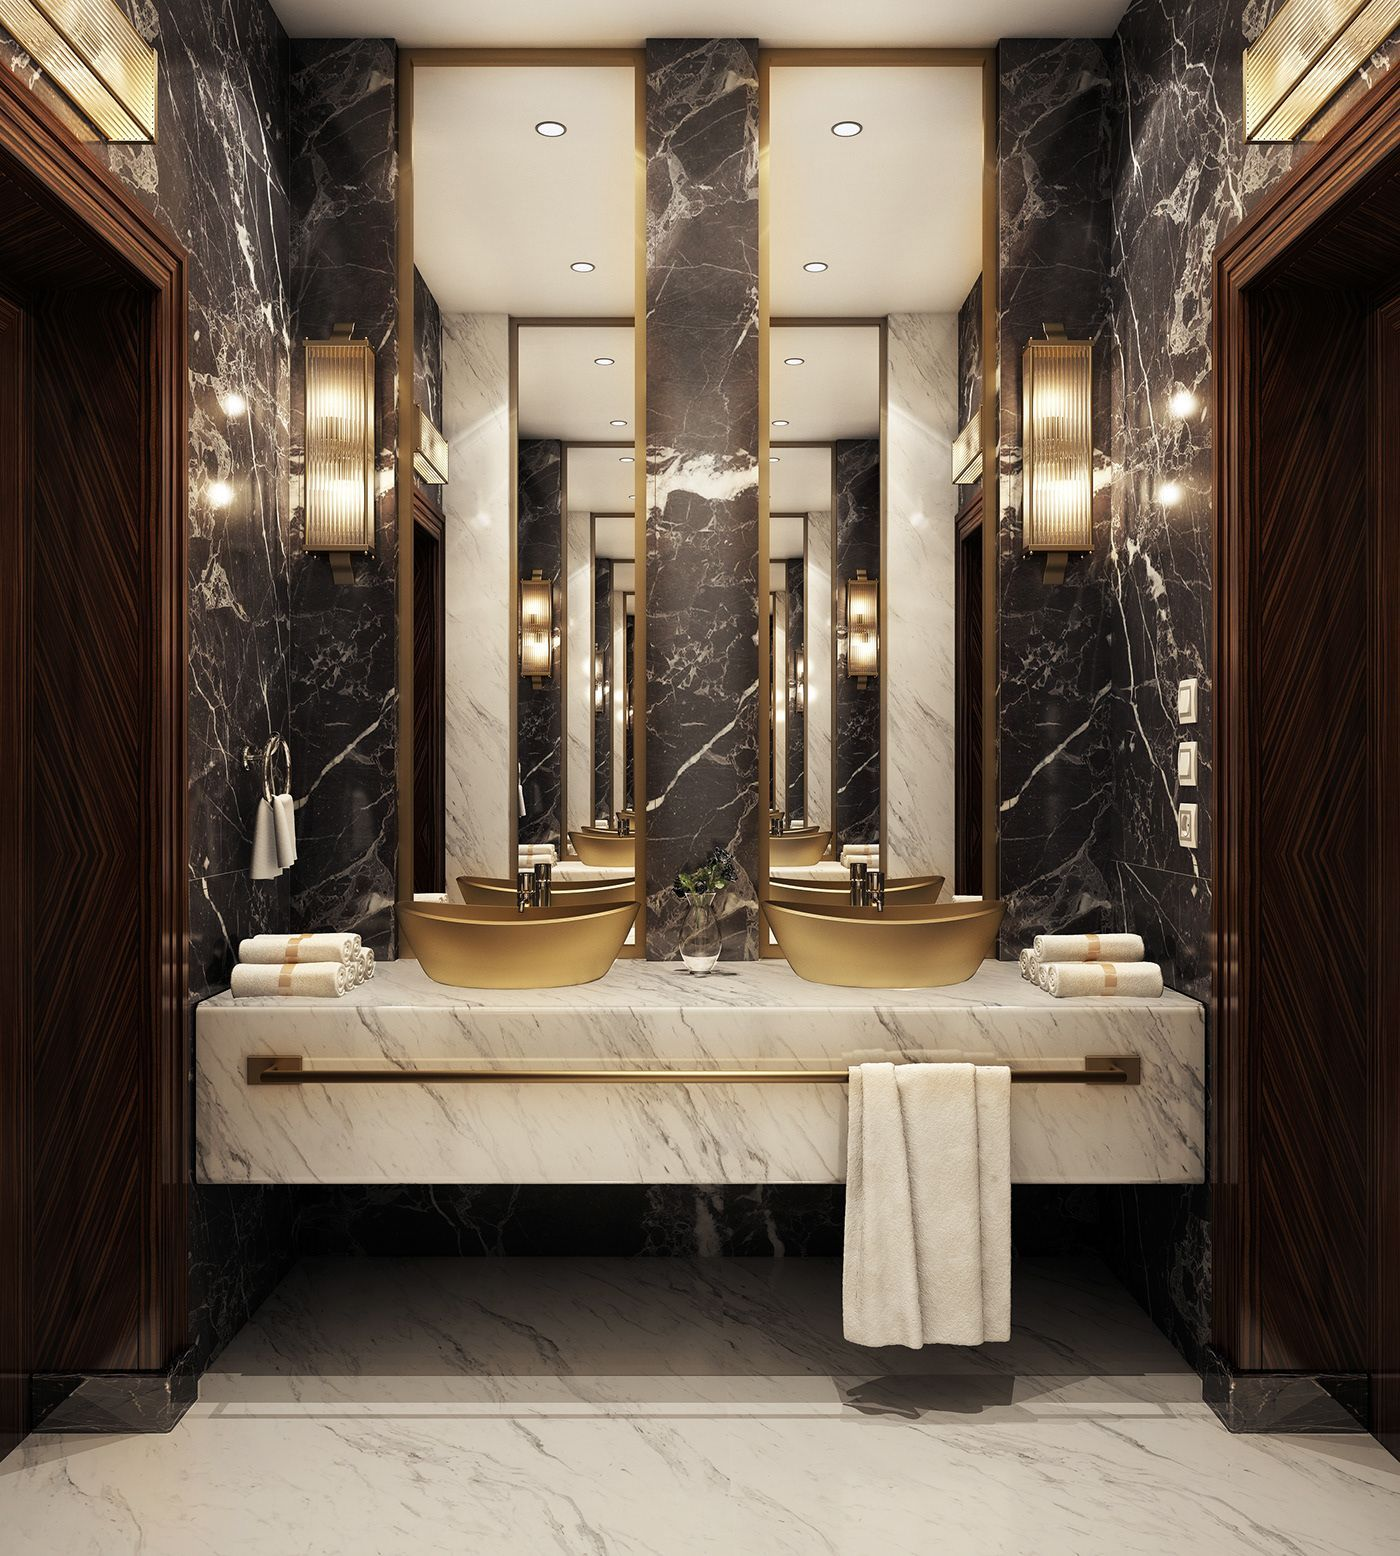 Discover The Latest Bathroom Design Trends For Your Amazing Project And Create The Modern Luxury Bathroom Luxury Bathroom Master Baths Bathroom Design Luxury